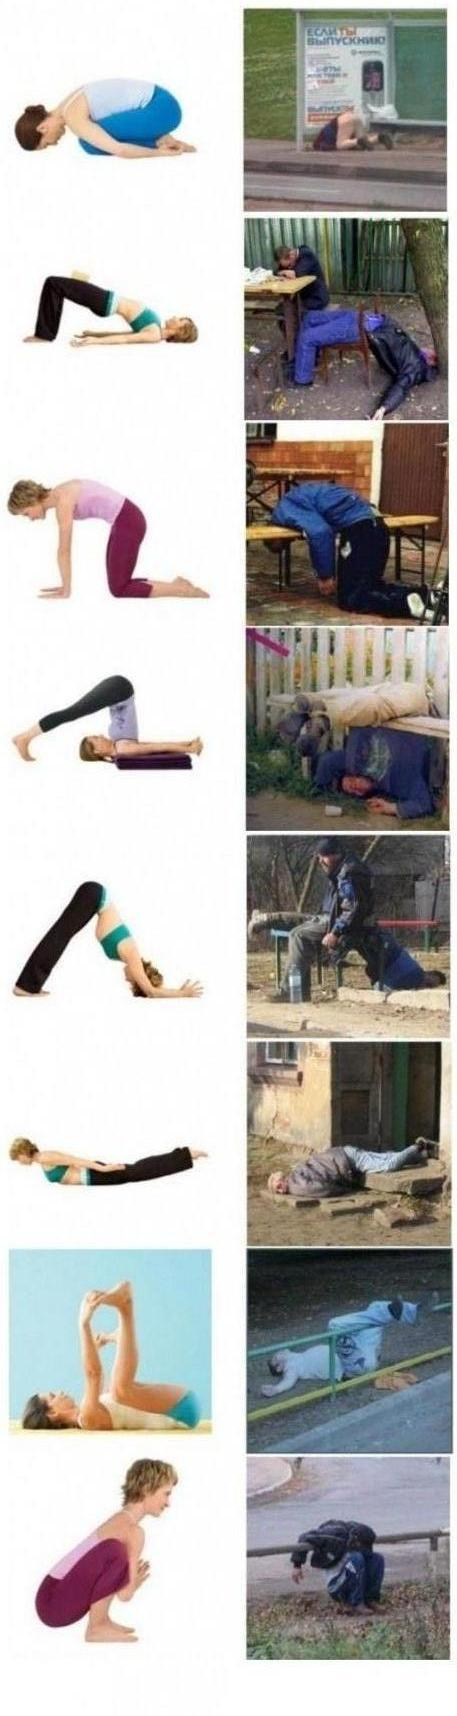 You Start Doing Postures In Strange Places